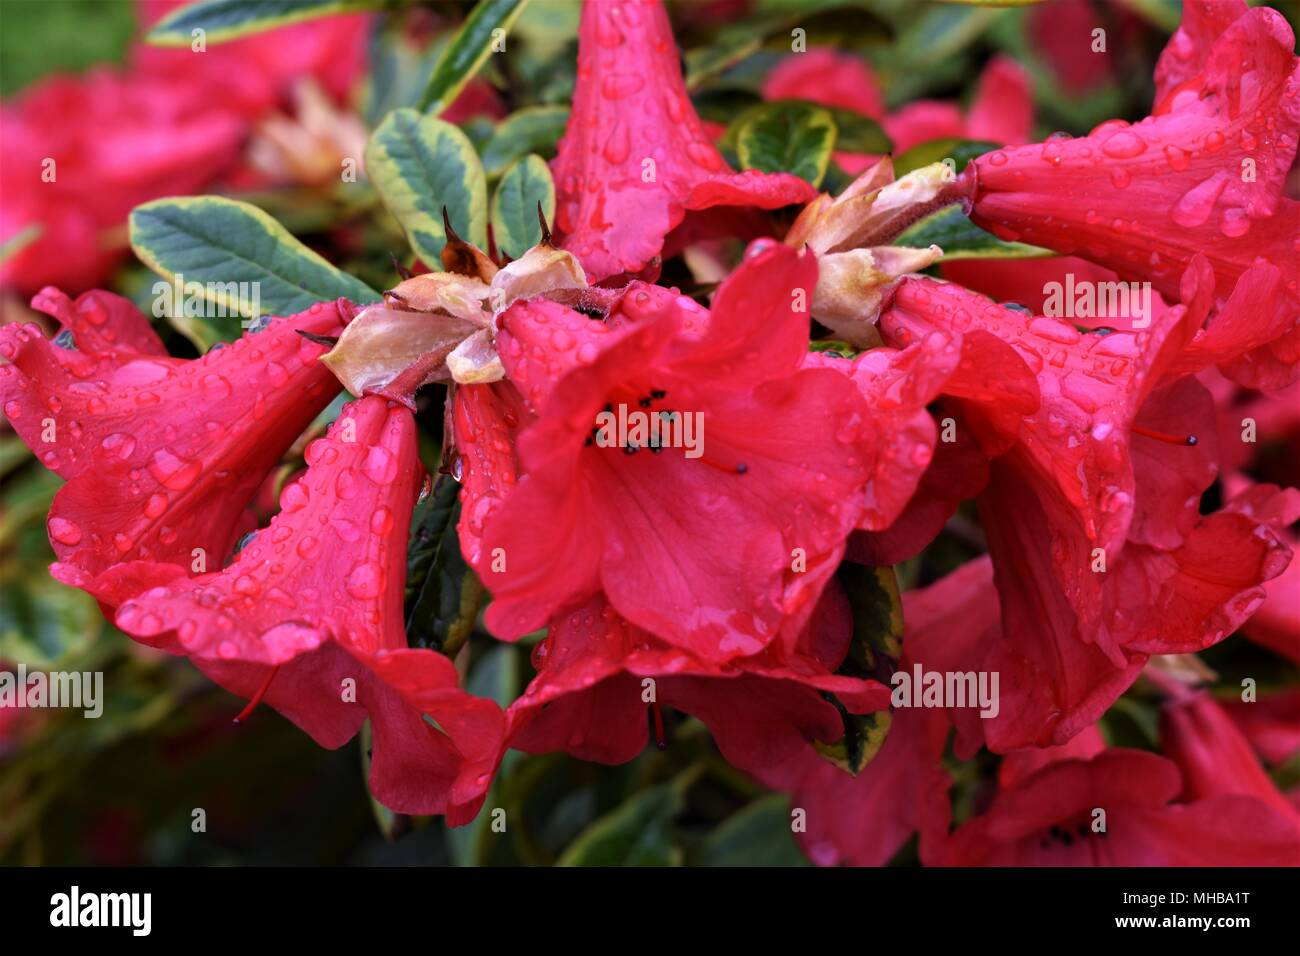 Beautiful hanging basket flowers stock photos beautiful hanging up close and personal with mother nature the beauty of flowers in the morning dew izmirmasajfo Images